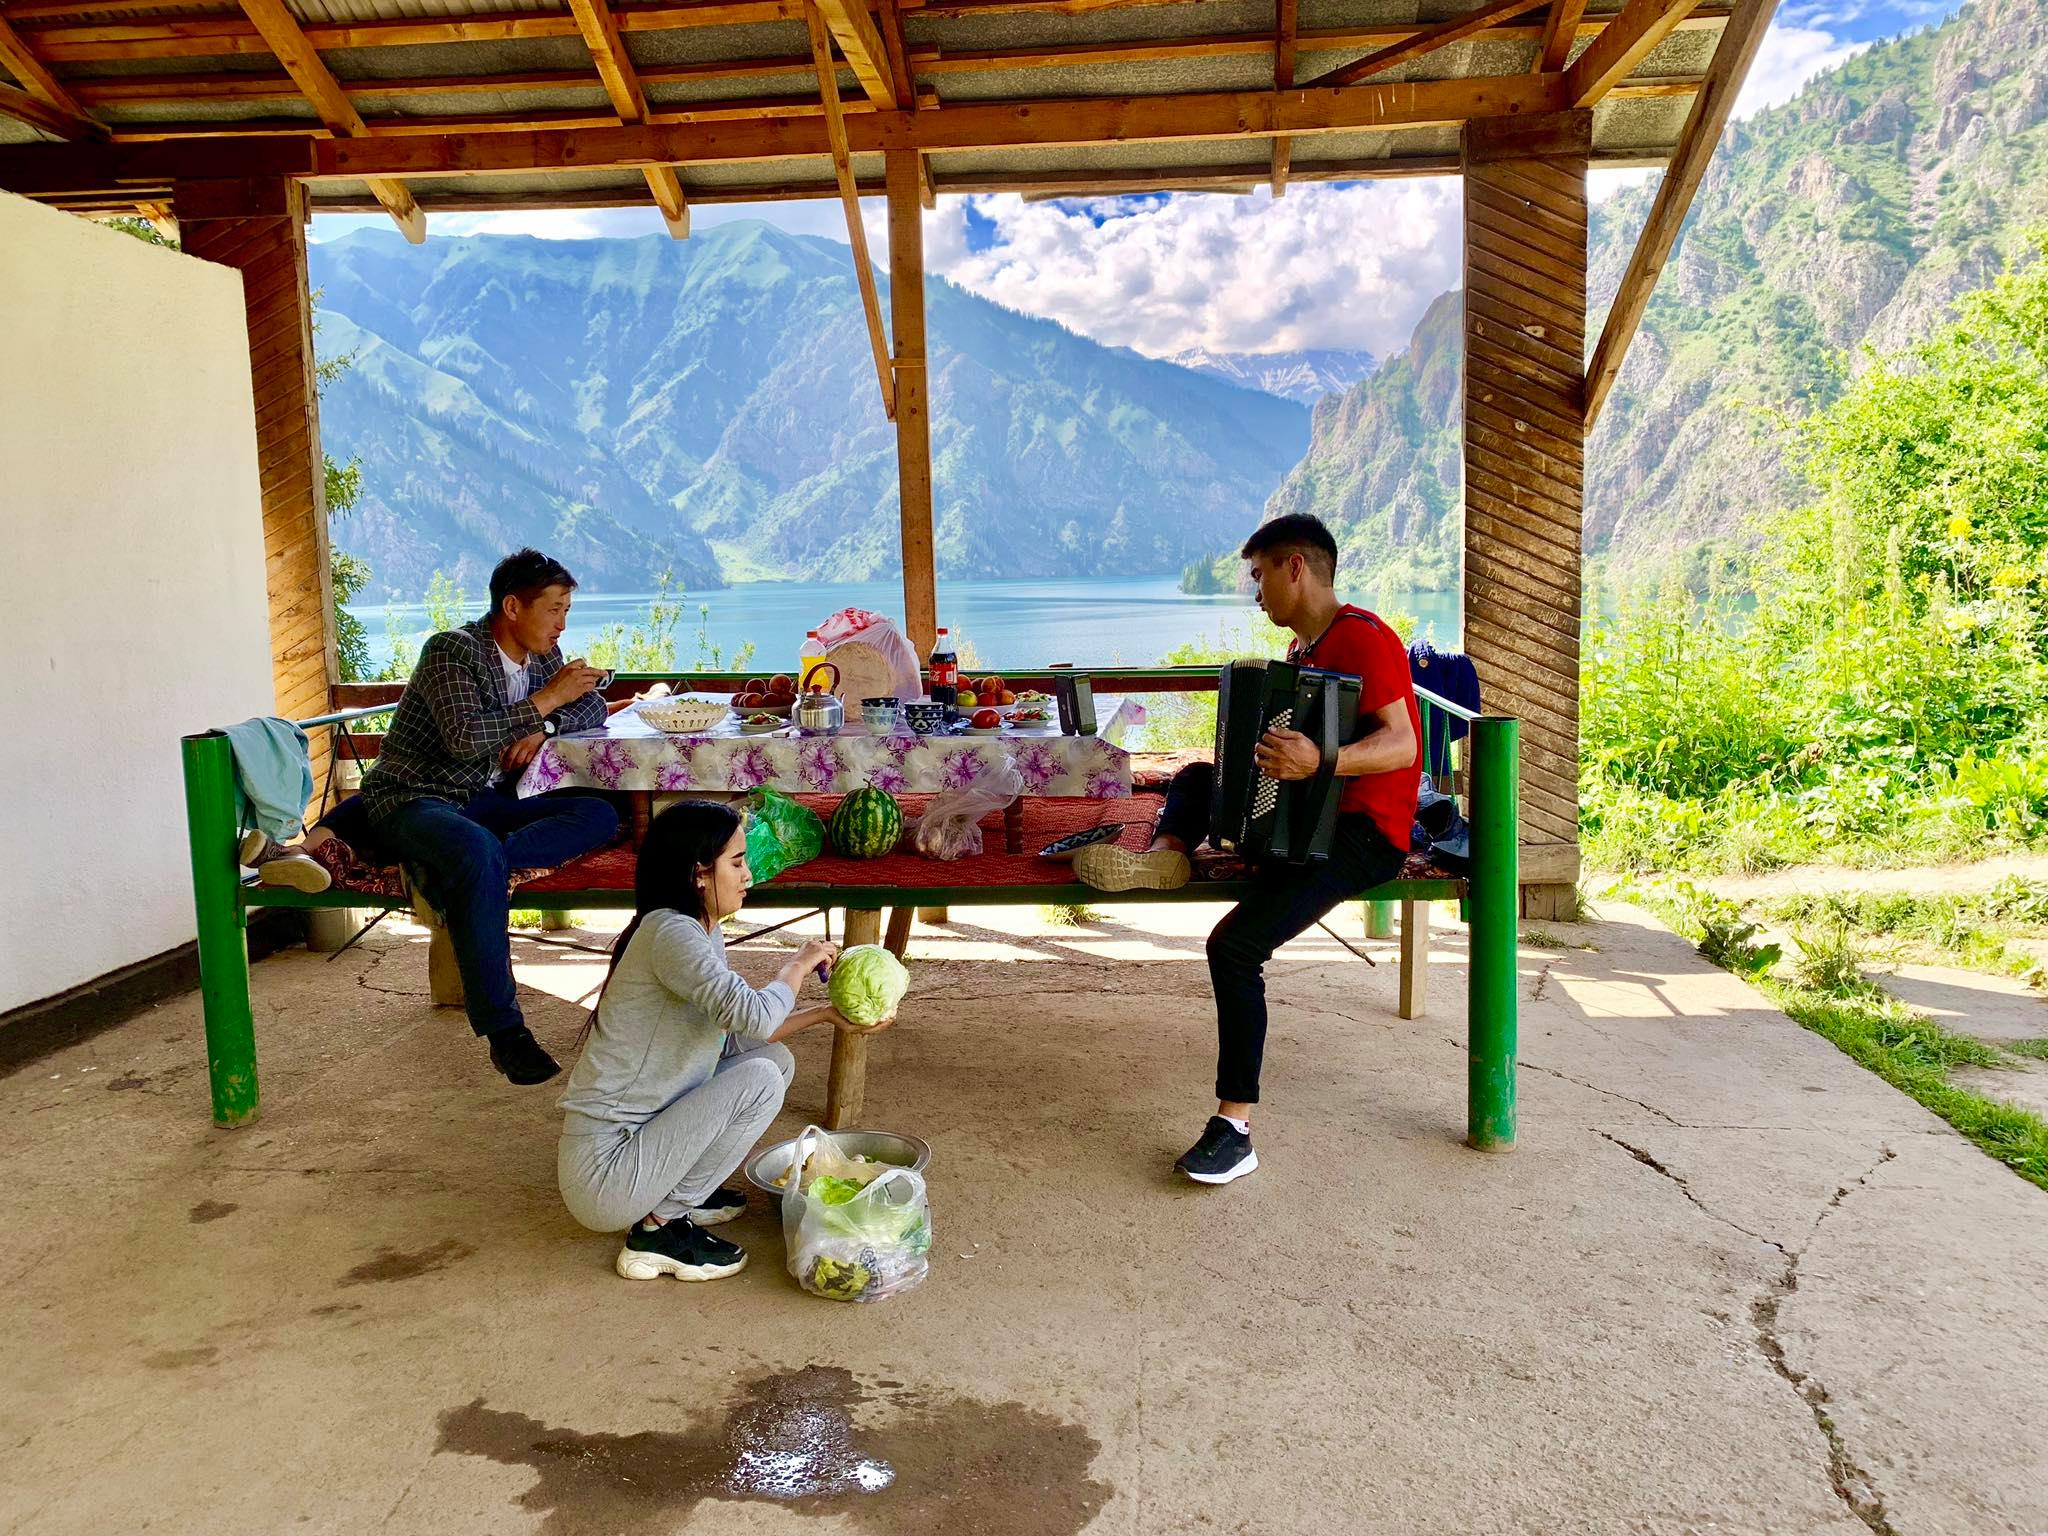 Kach Solo Travels in 2019 Roadtrip to Sary Chelek Lake which is 330 km. from Osh, Kyrgyzstan25.jpg